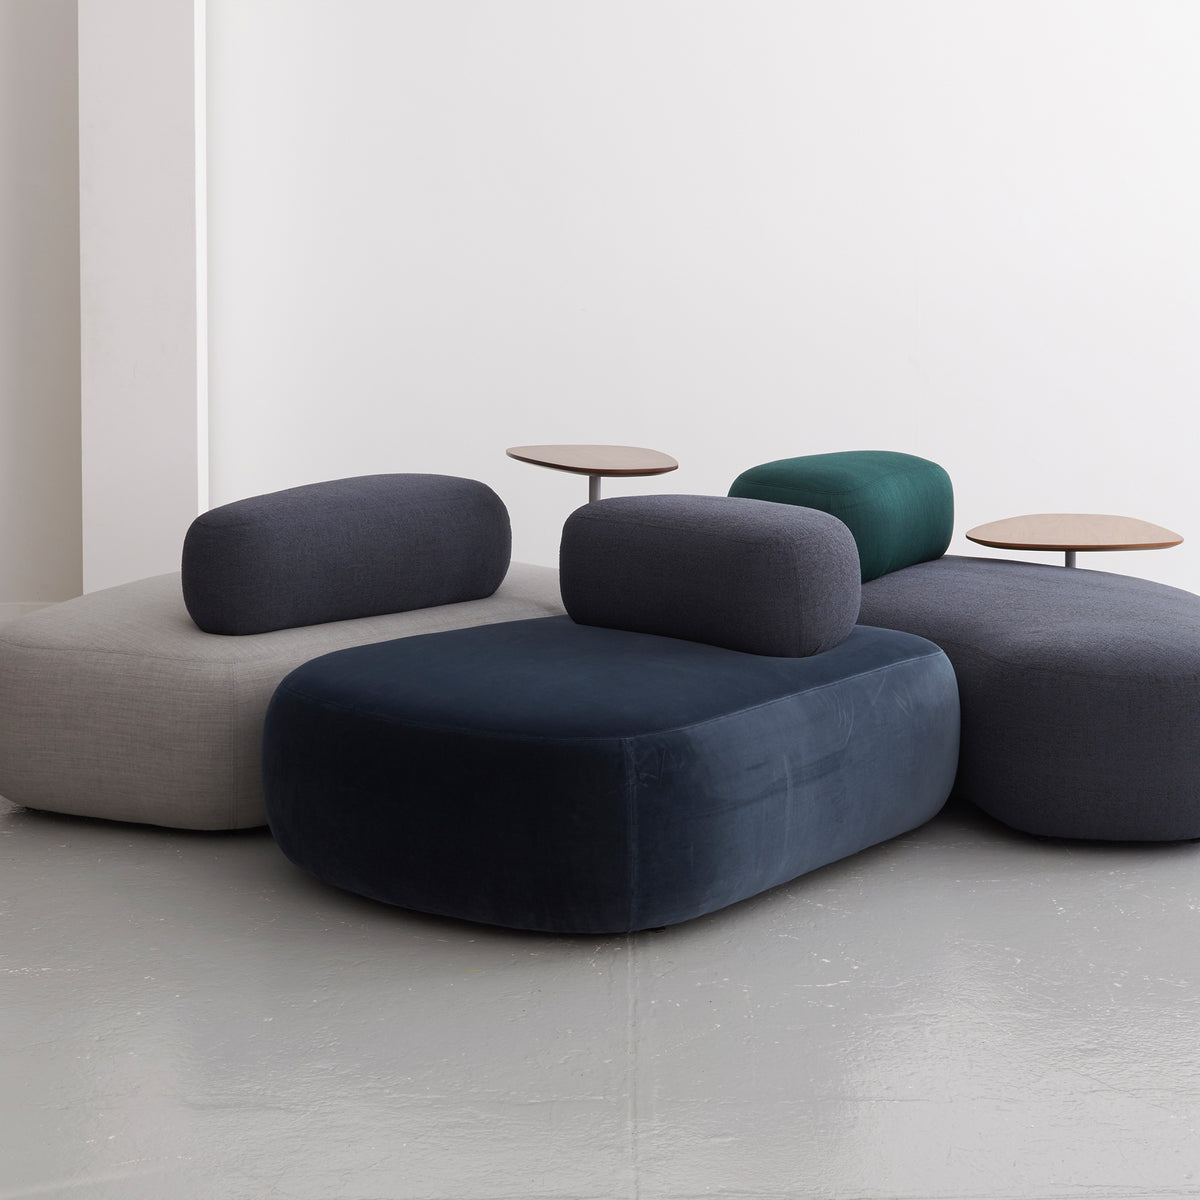 Hitch Mylius Office HM63a Pebble Seating